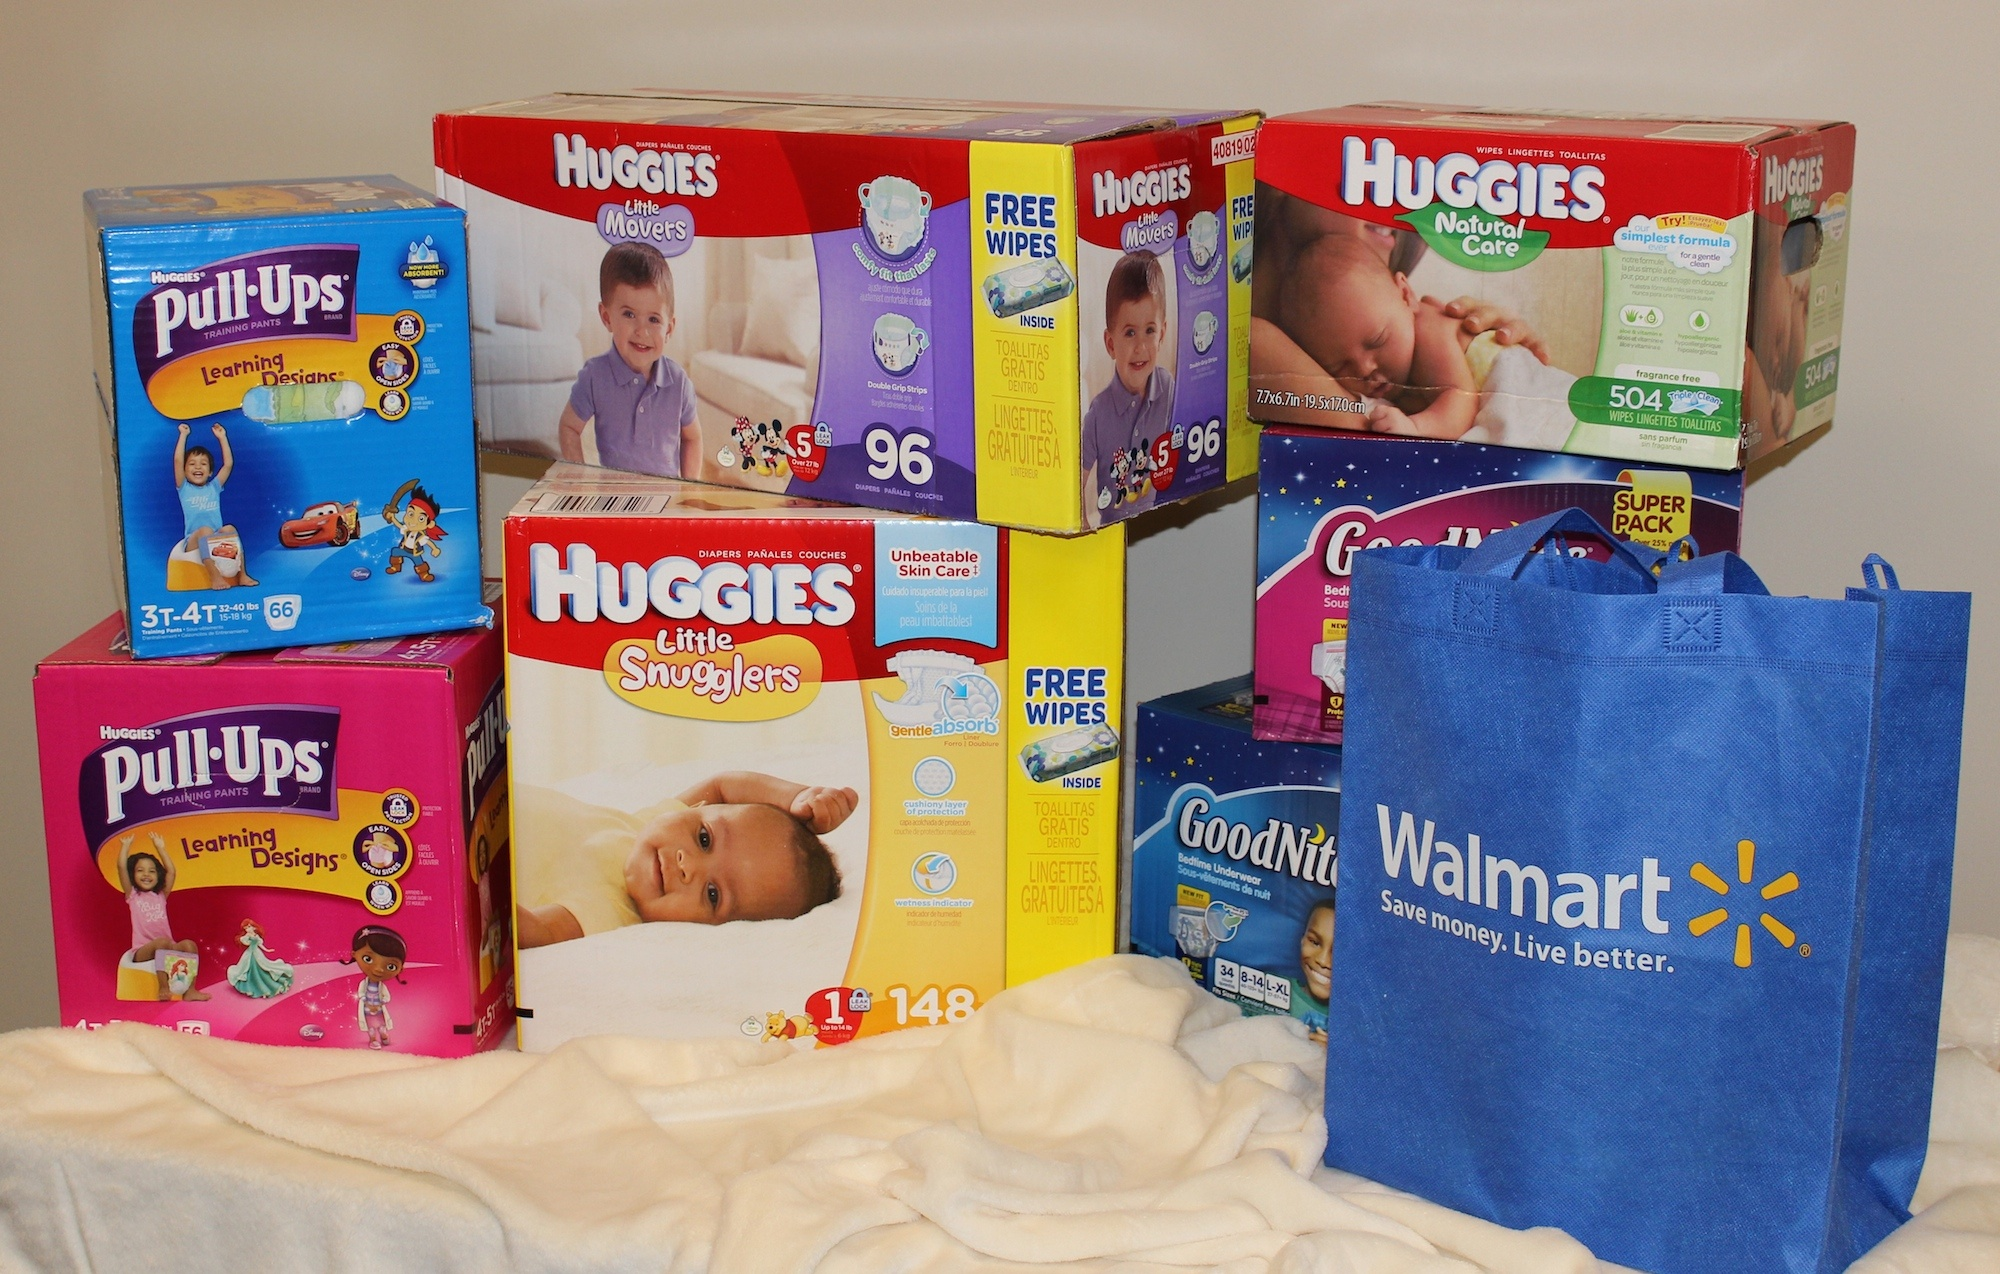 Free Digital Printable Diaper Coupons At Walmart - Free Printable Coupons For Huggies Pull Ups